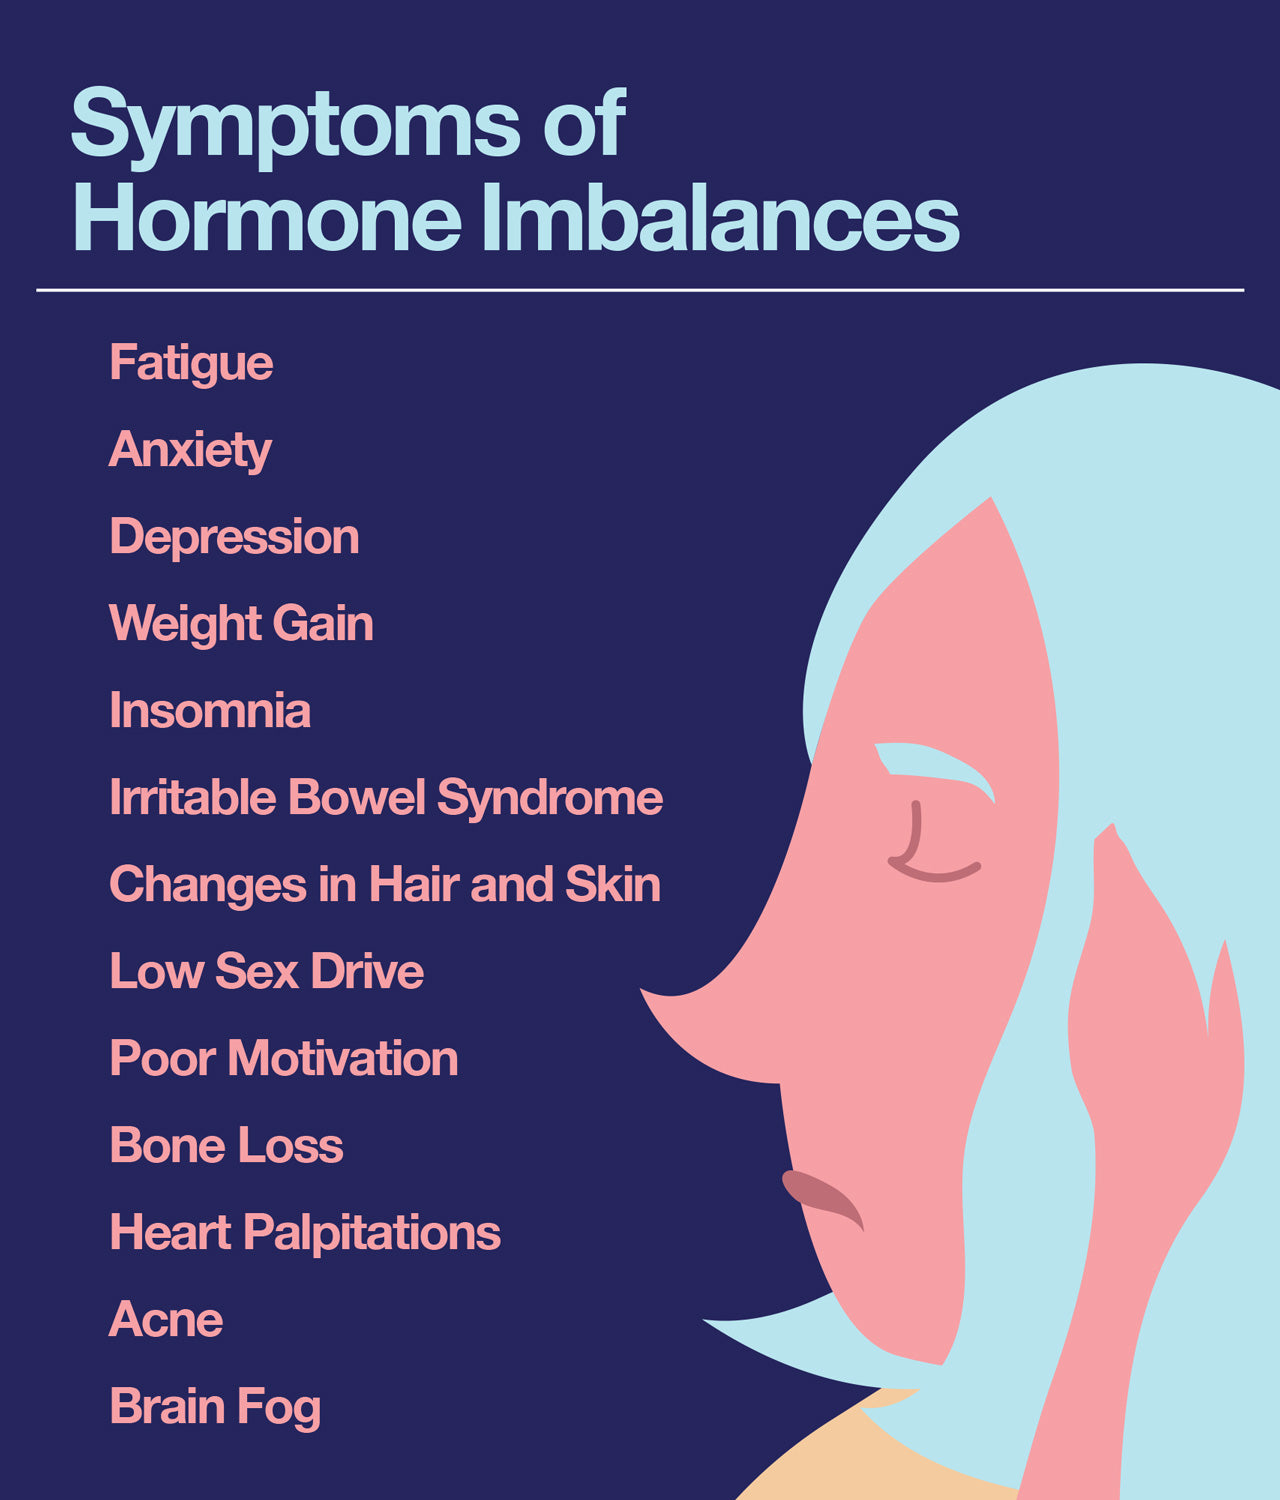 Symptoms of Hormone Imbalances